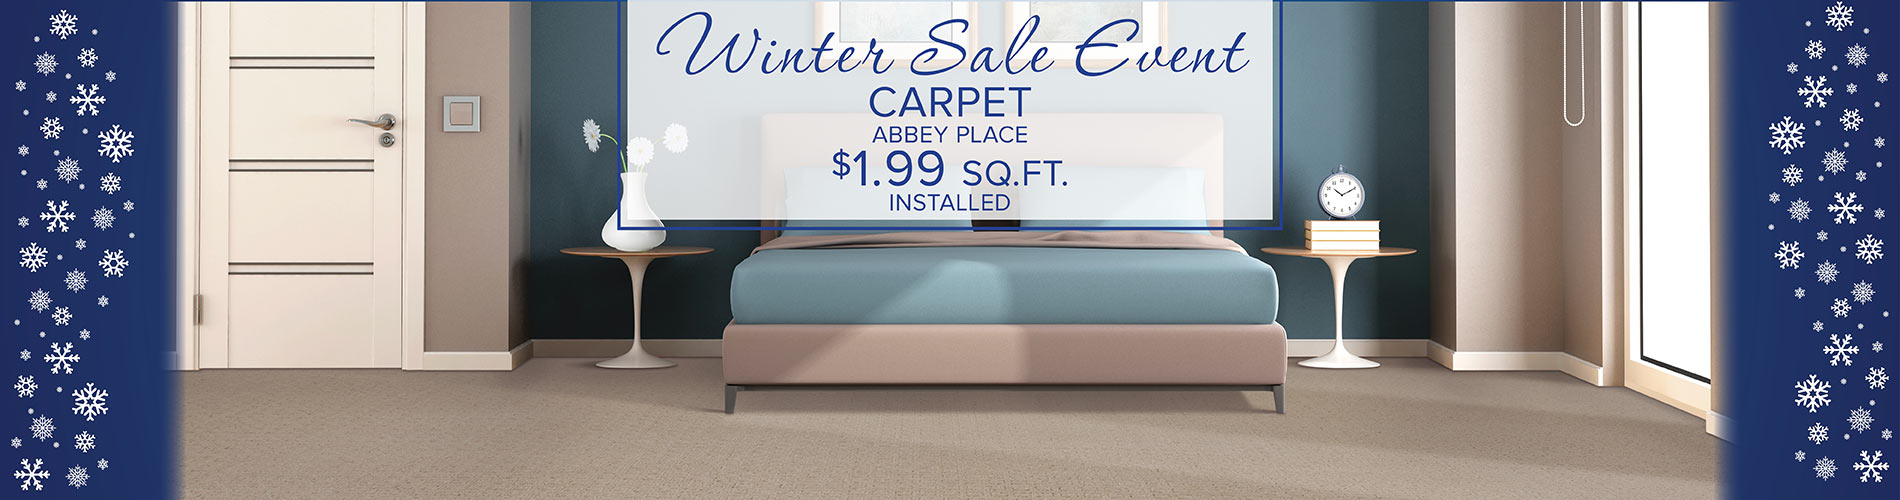 Abbey Place carpet $1.99 sq ft installed during our Winter Sale Event